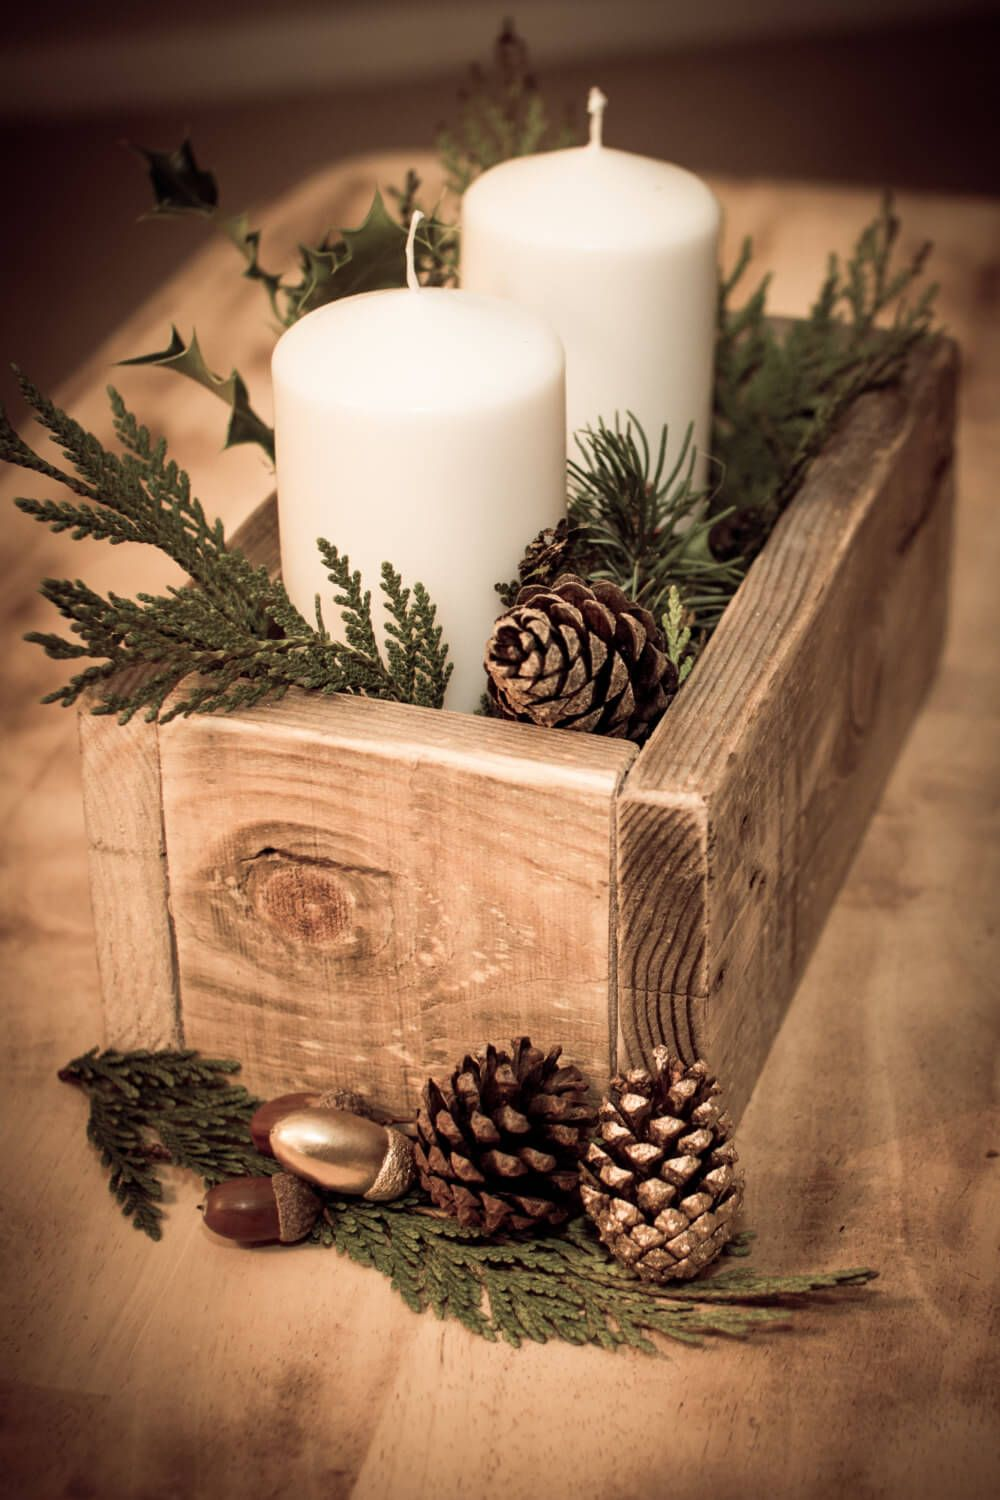 25 Simple And Cute Rustic Wooden Box Centerpiece Ideas To Liven Up Your Decor Christmas Decorations Rustic Christmas Decor Diy Holiday Centerpieces